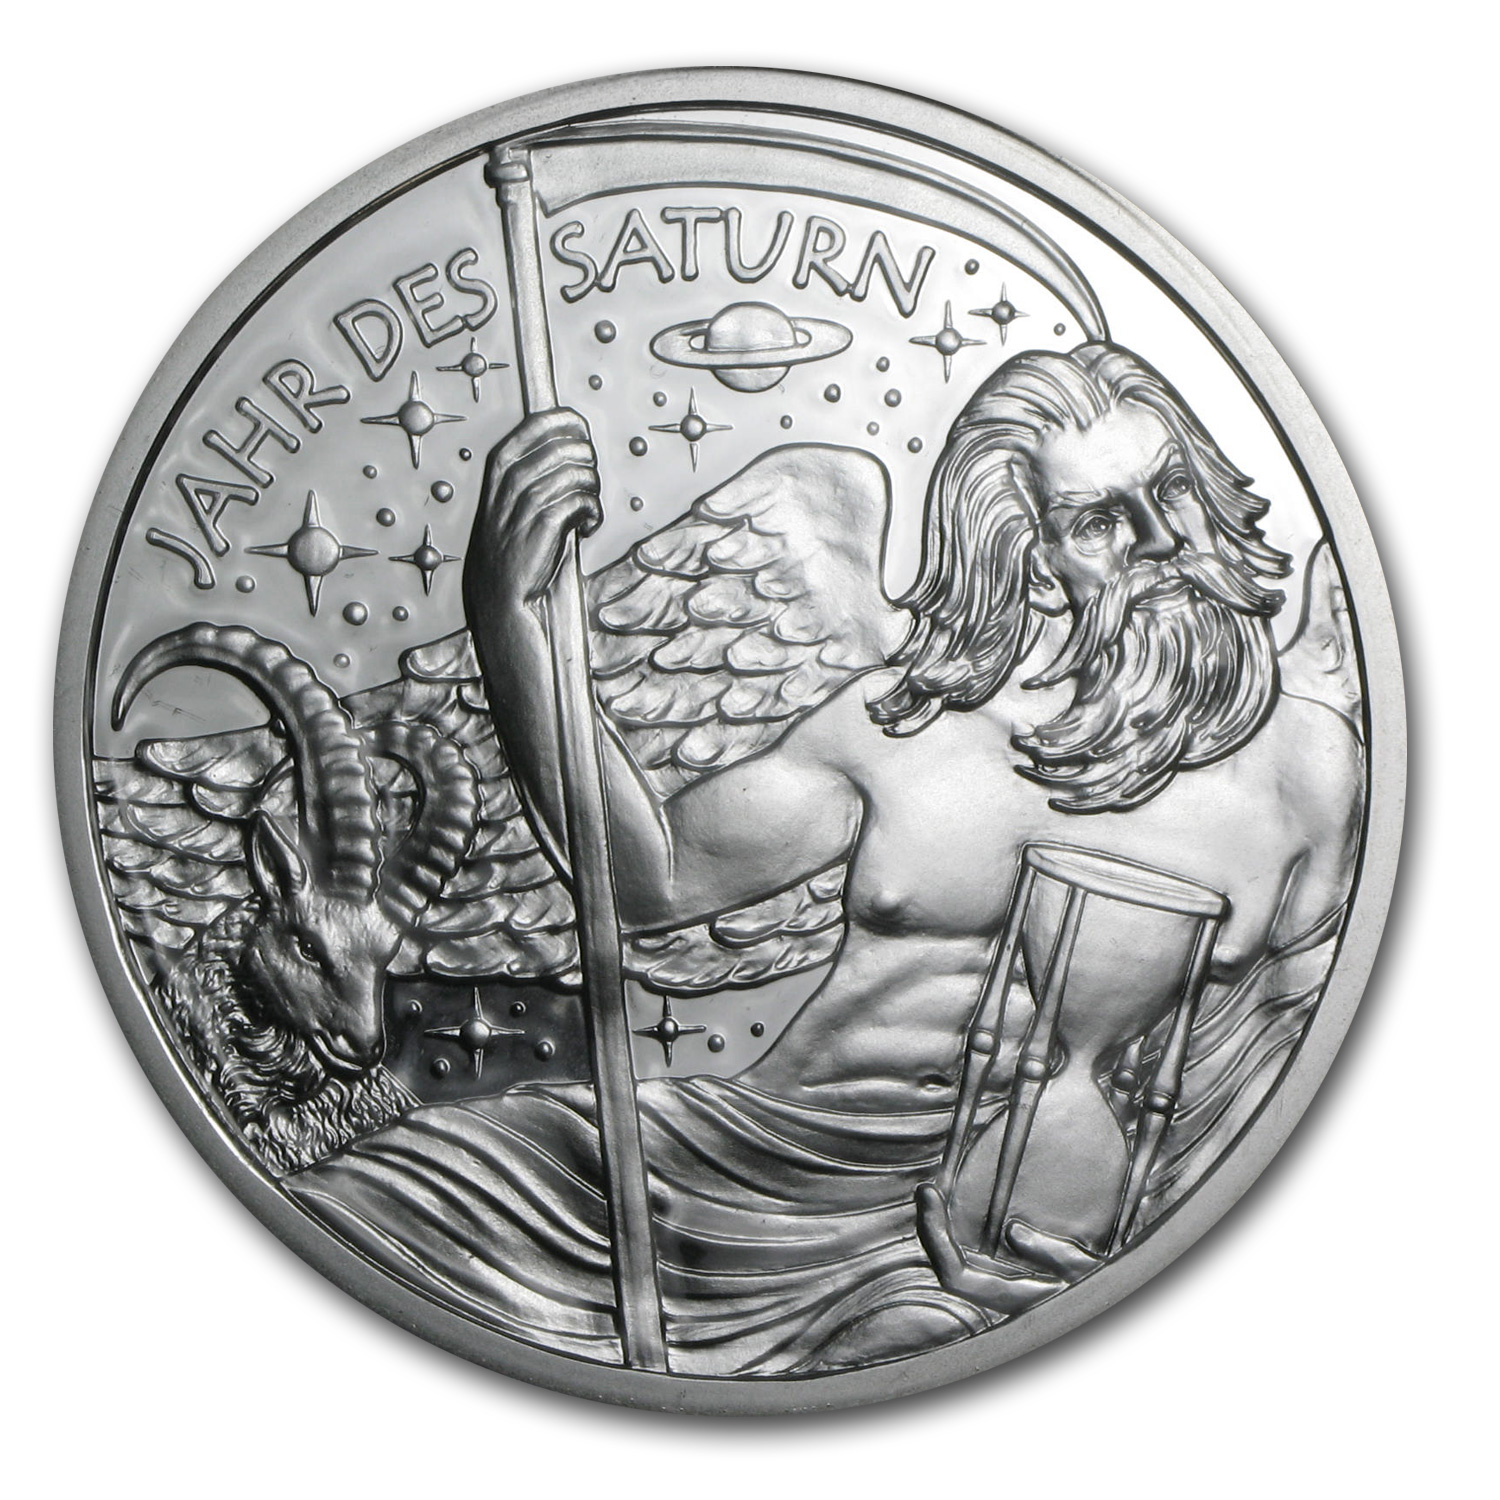 2014 Austria Silver The Golden Age of Saturn (Kalendermedaille)